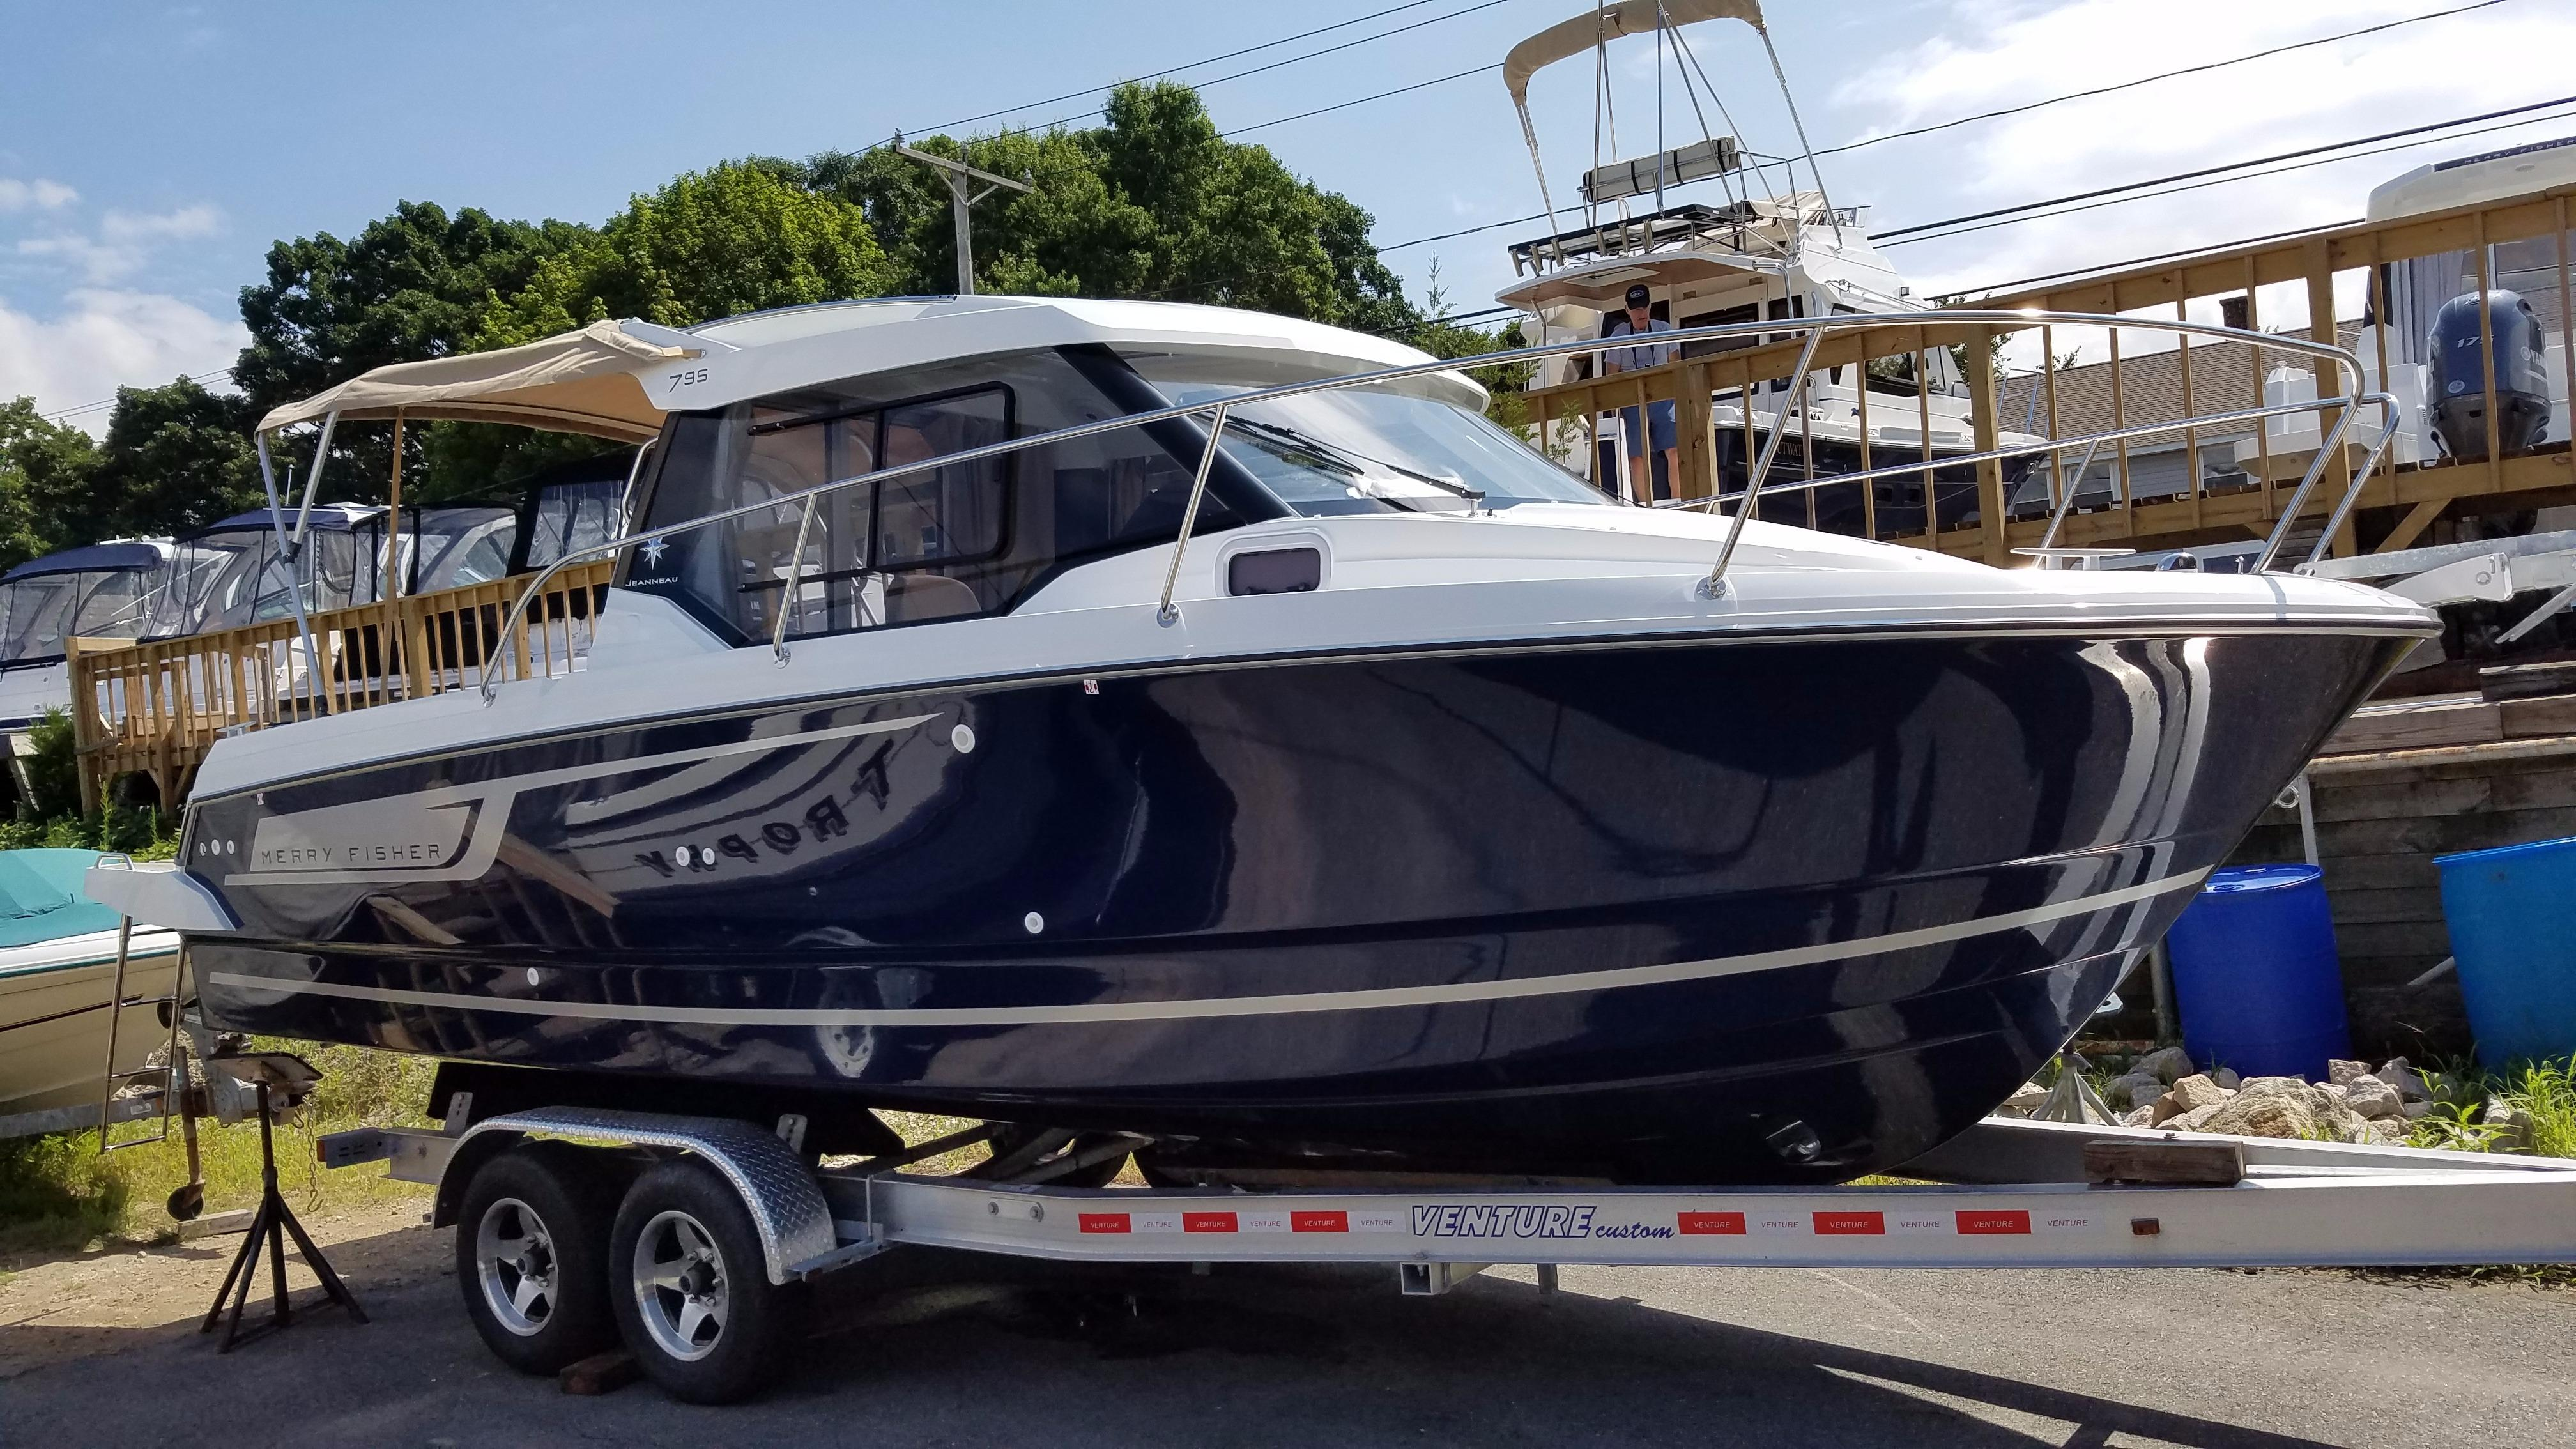 2018 Jeanneau NC 795 Power Boat For Sale - www.yachtworld.com